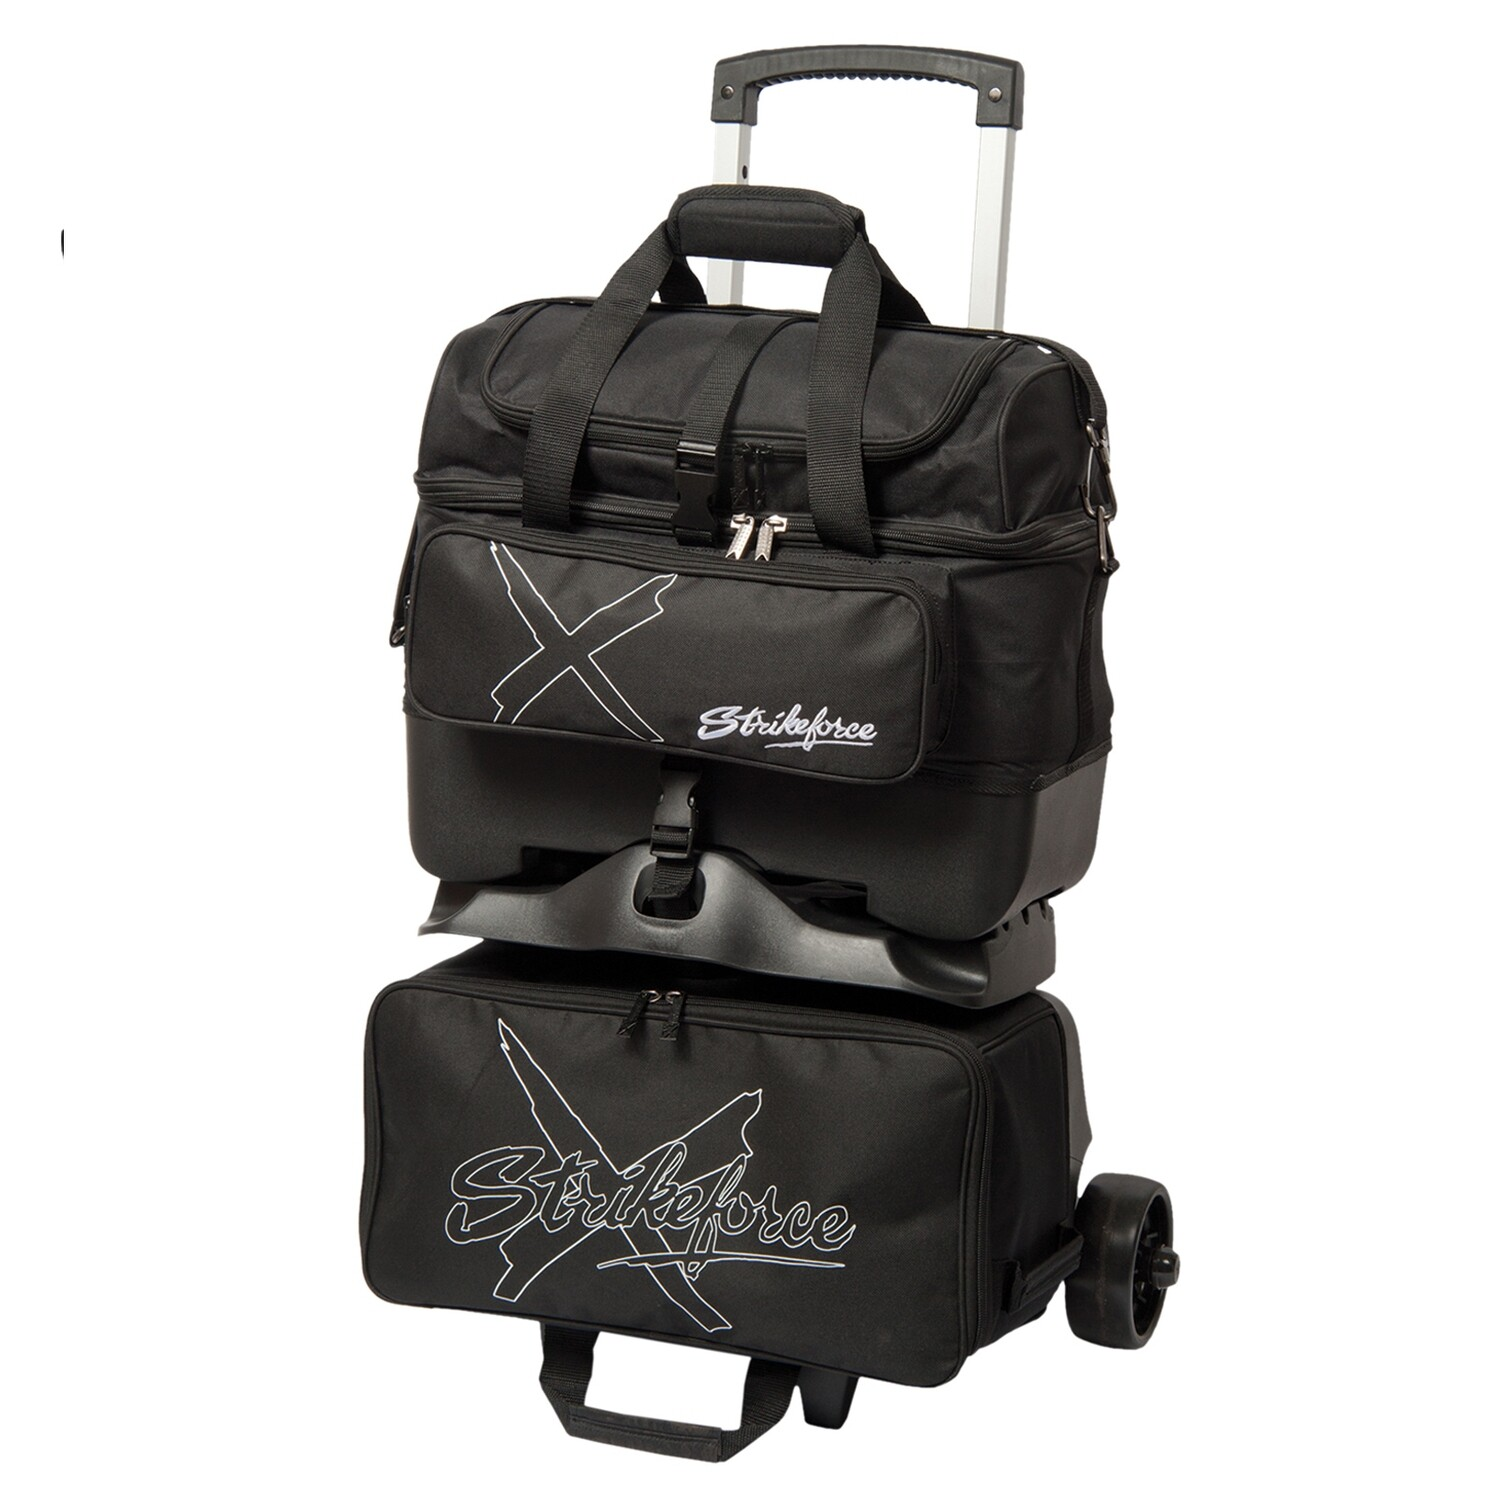 KR Strikeforce Hybrid X Black 4 Ball Roller Bowling Bag